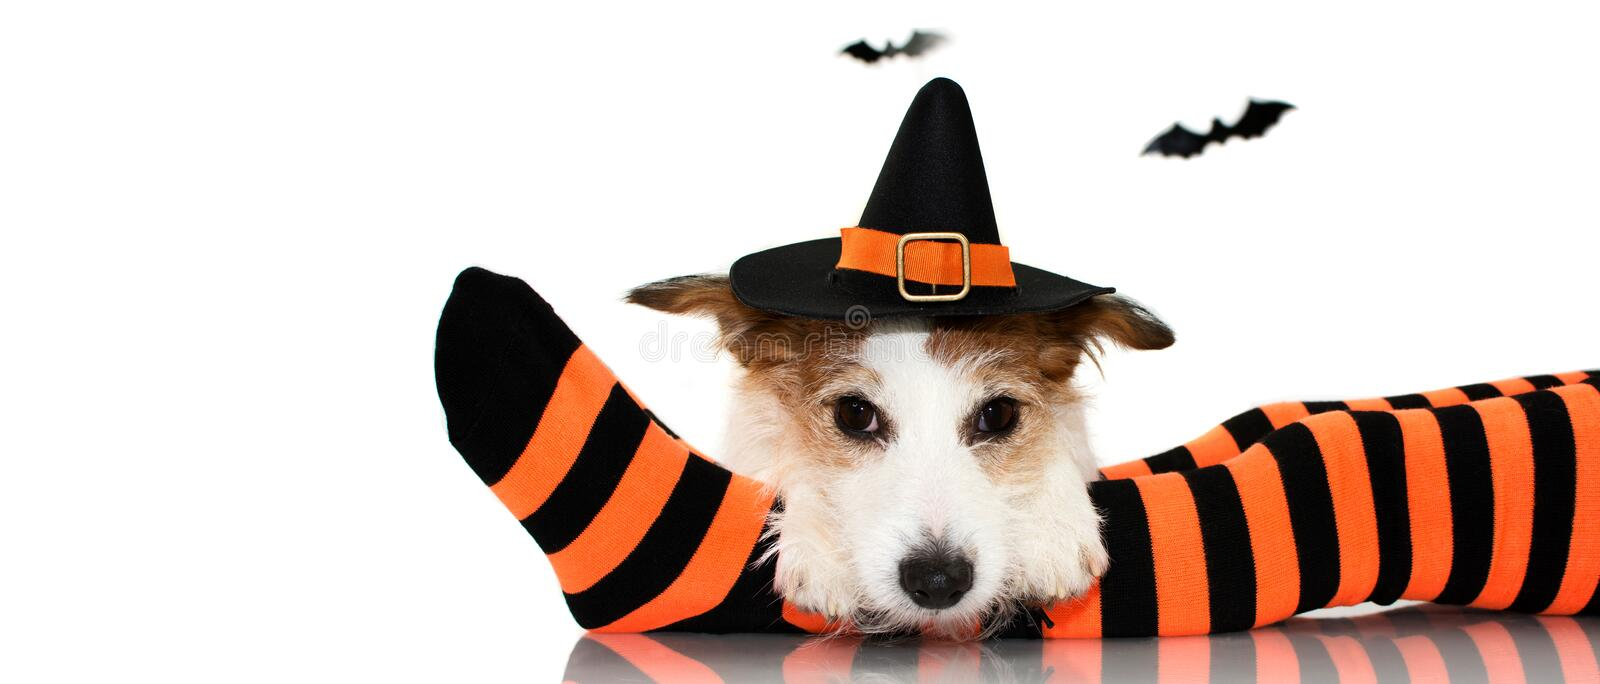 BANNER OF A CUTE HALLOWEEN DOG WEARING A WITCH OR WIZARD HAT SIT. TING OVER STRIPED ORANGE AND BLACK SOCKS OF ITS CHILD OWNER. ISOLATED AGAINST WHITE BACKGROUND stock image